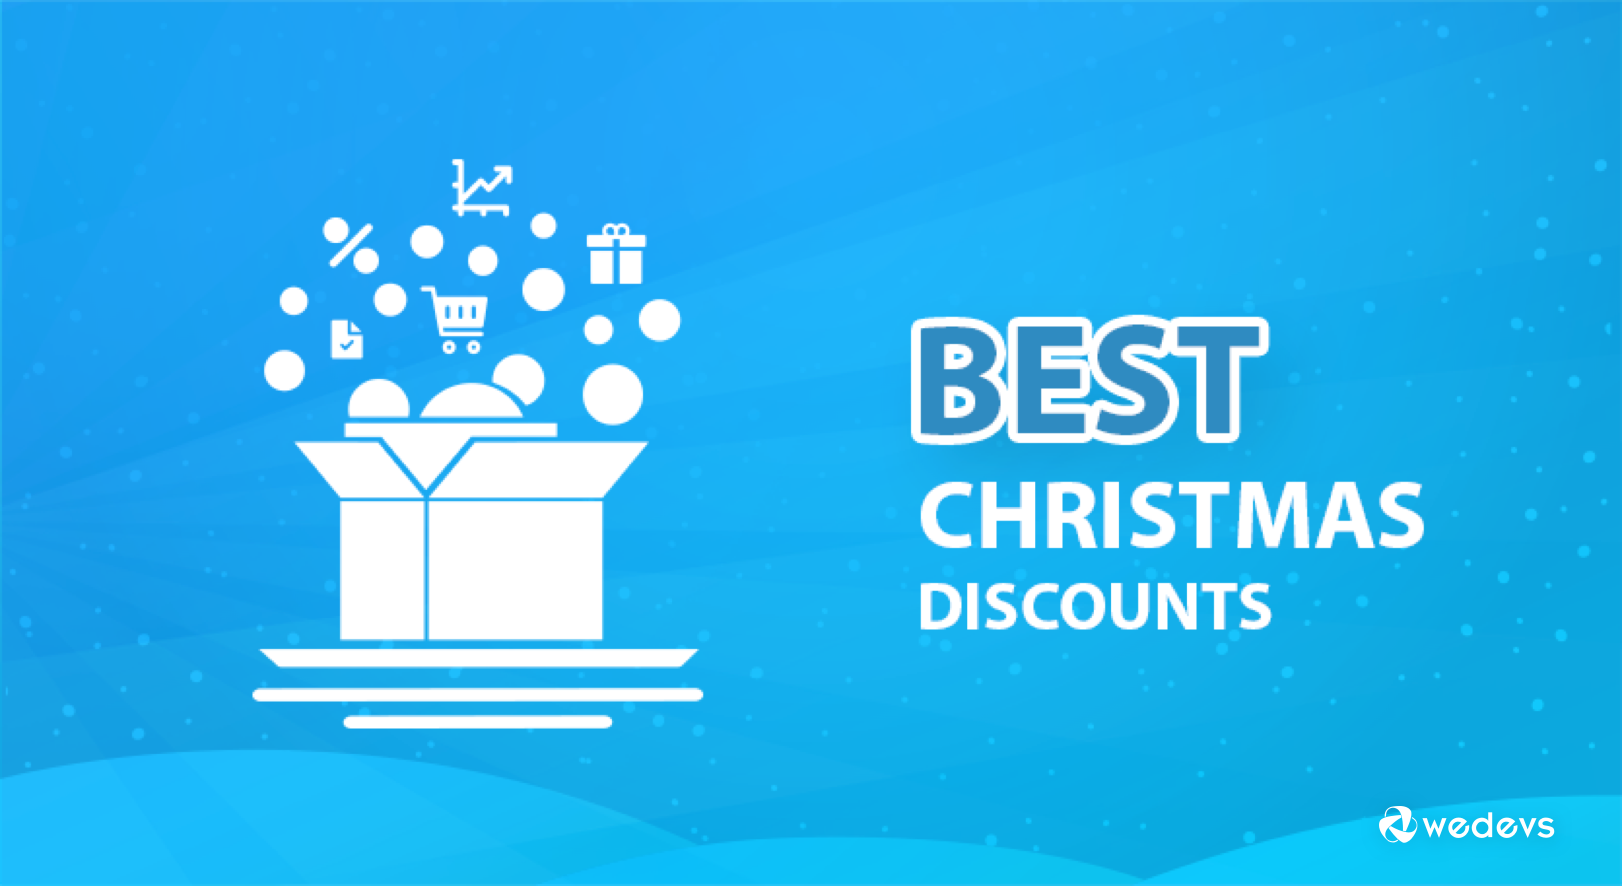 Last Minute Shopping Discounts on Christmas 2016!